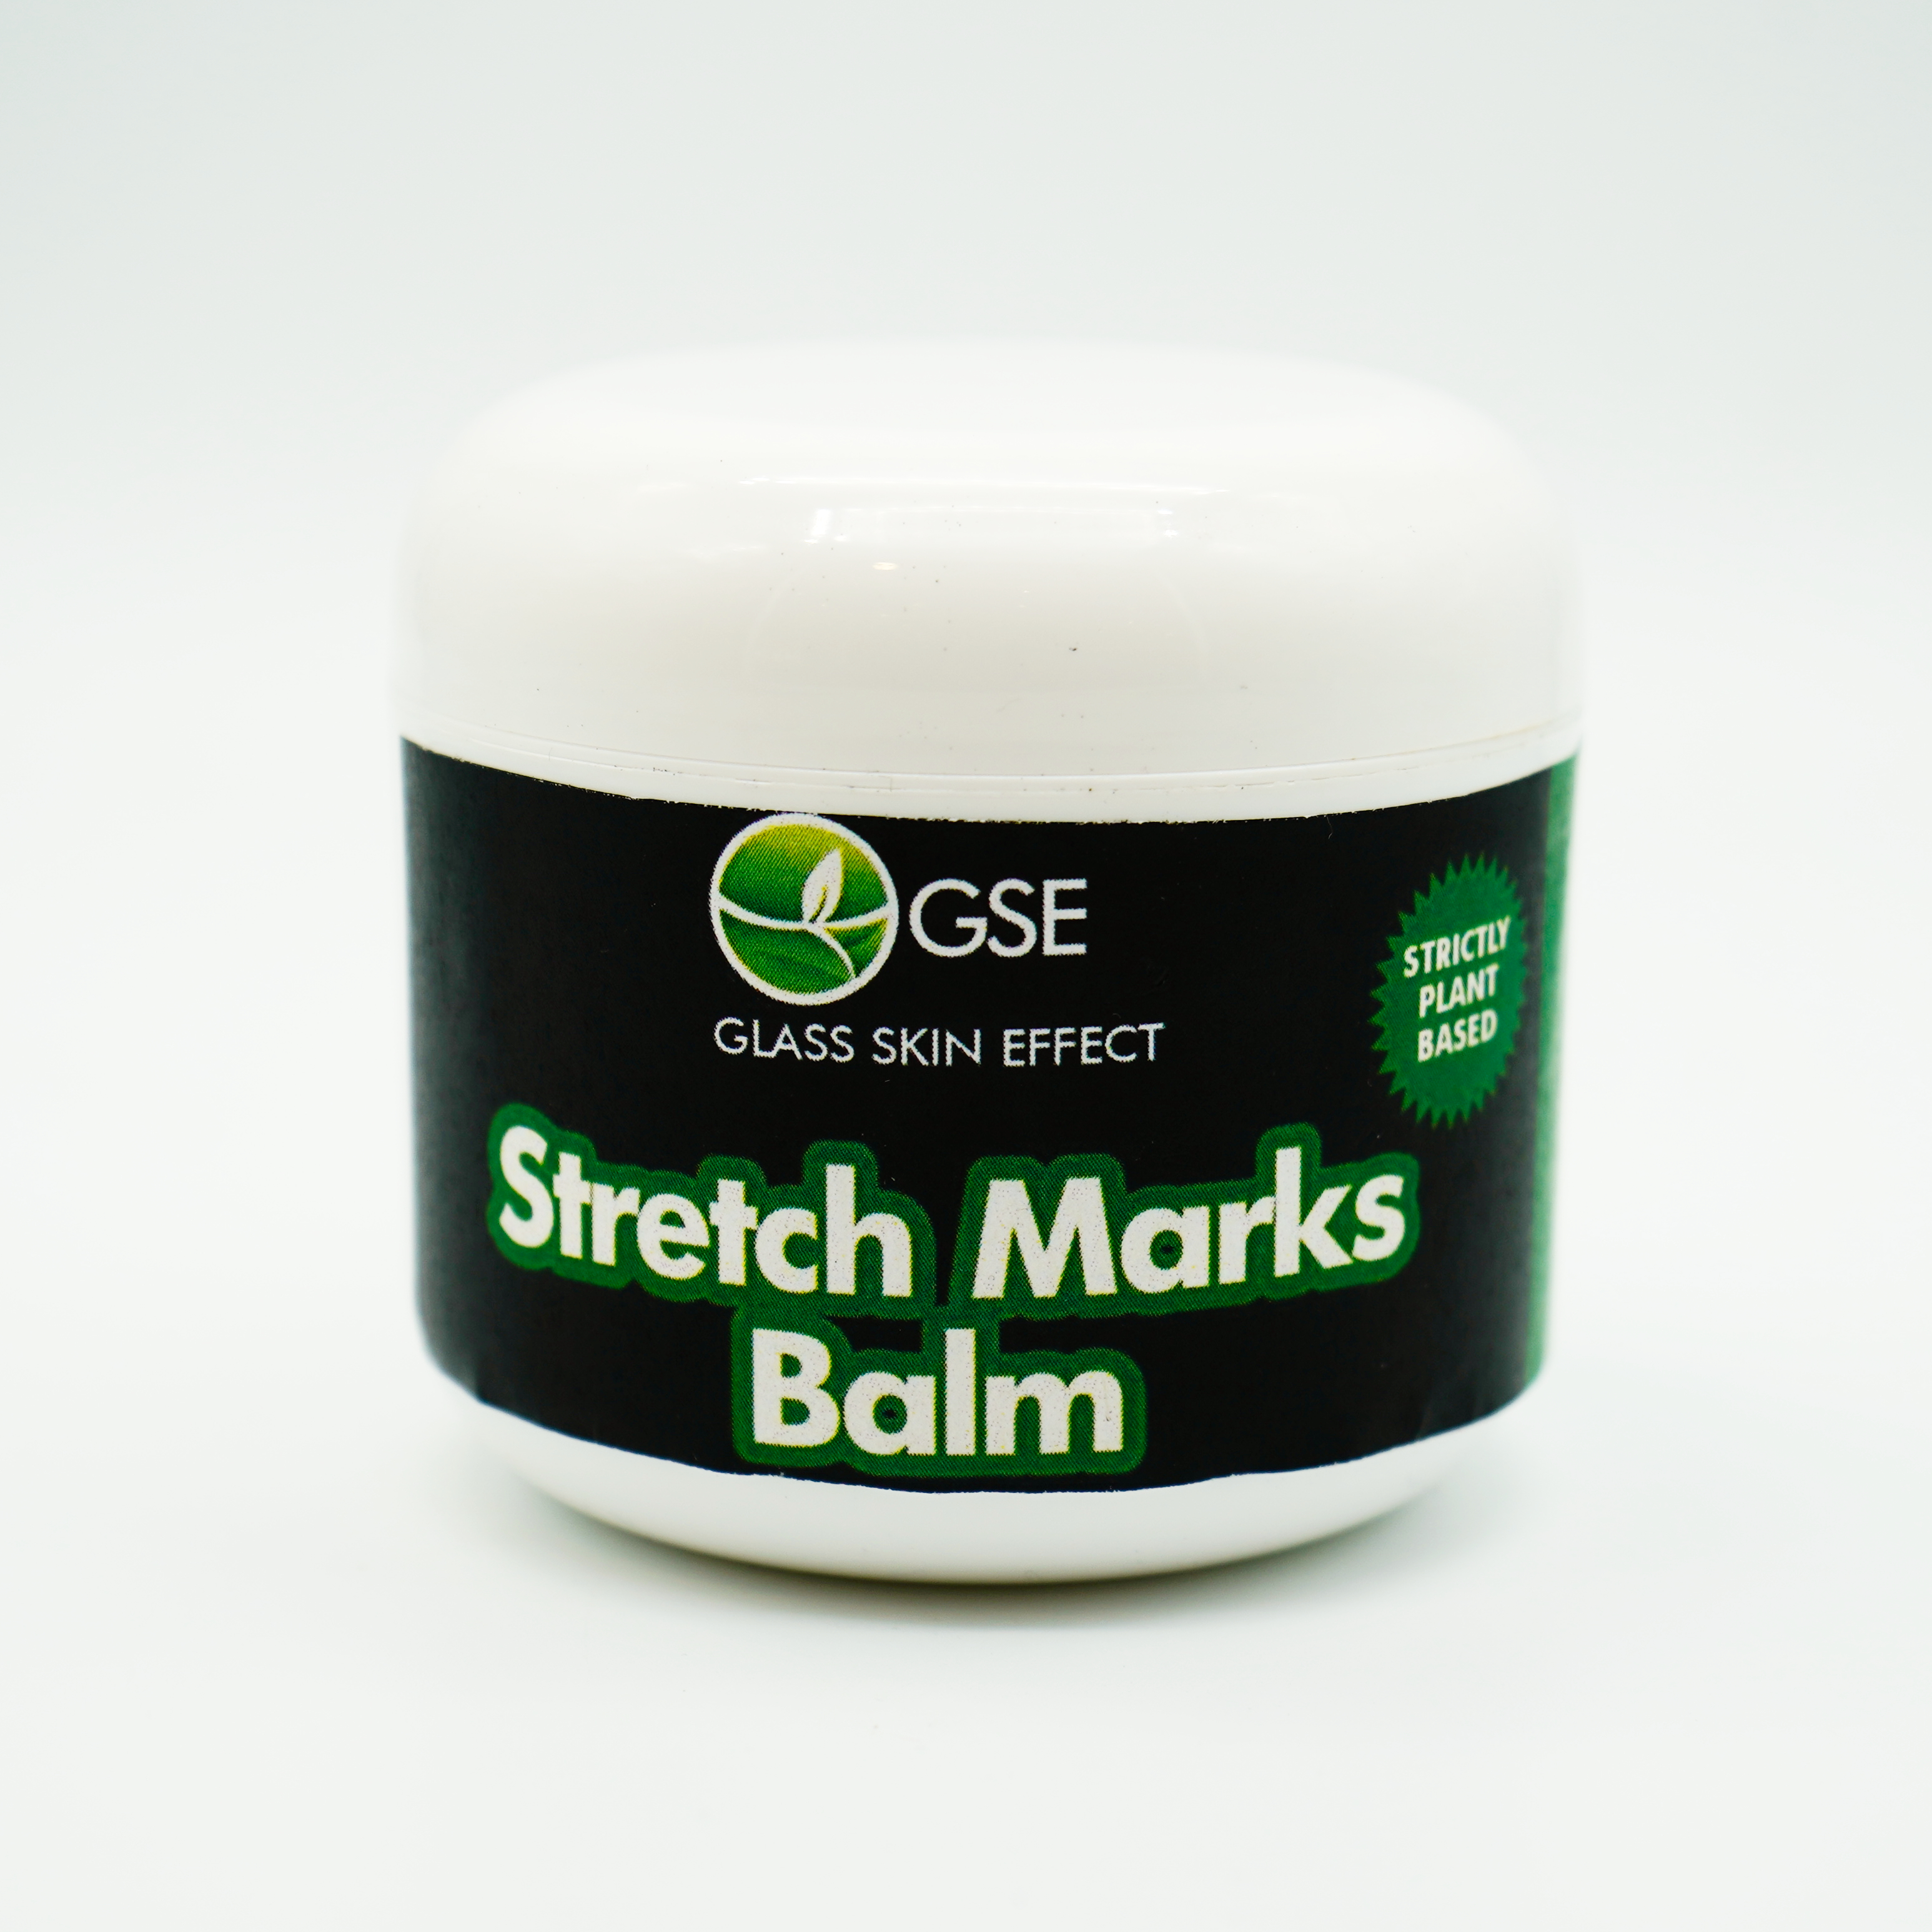 Stretch Marks Balm